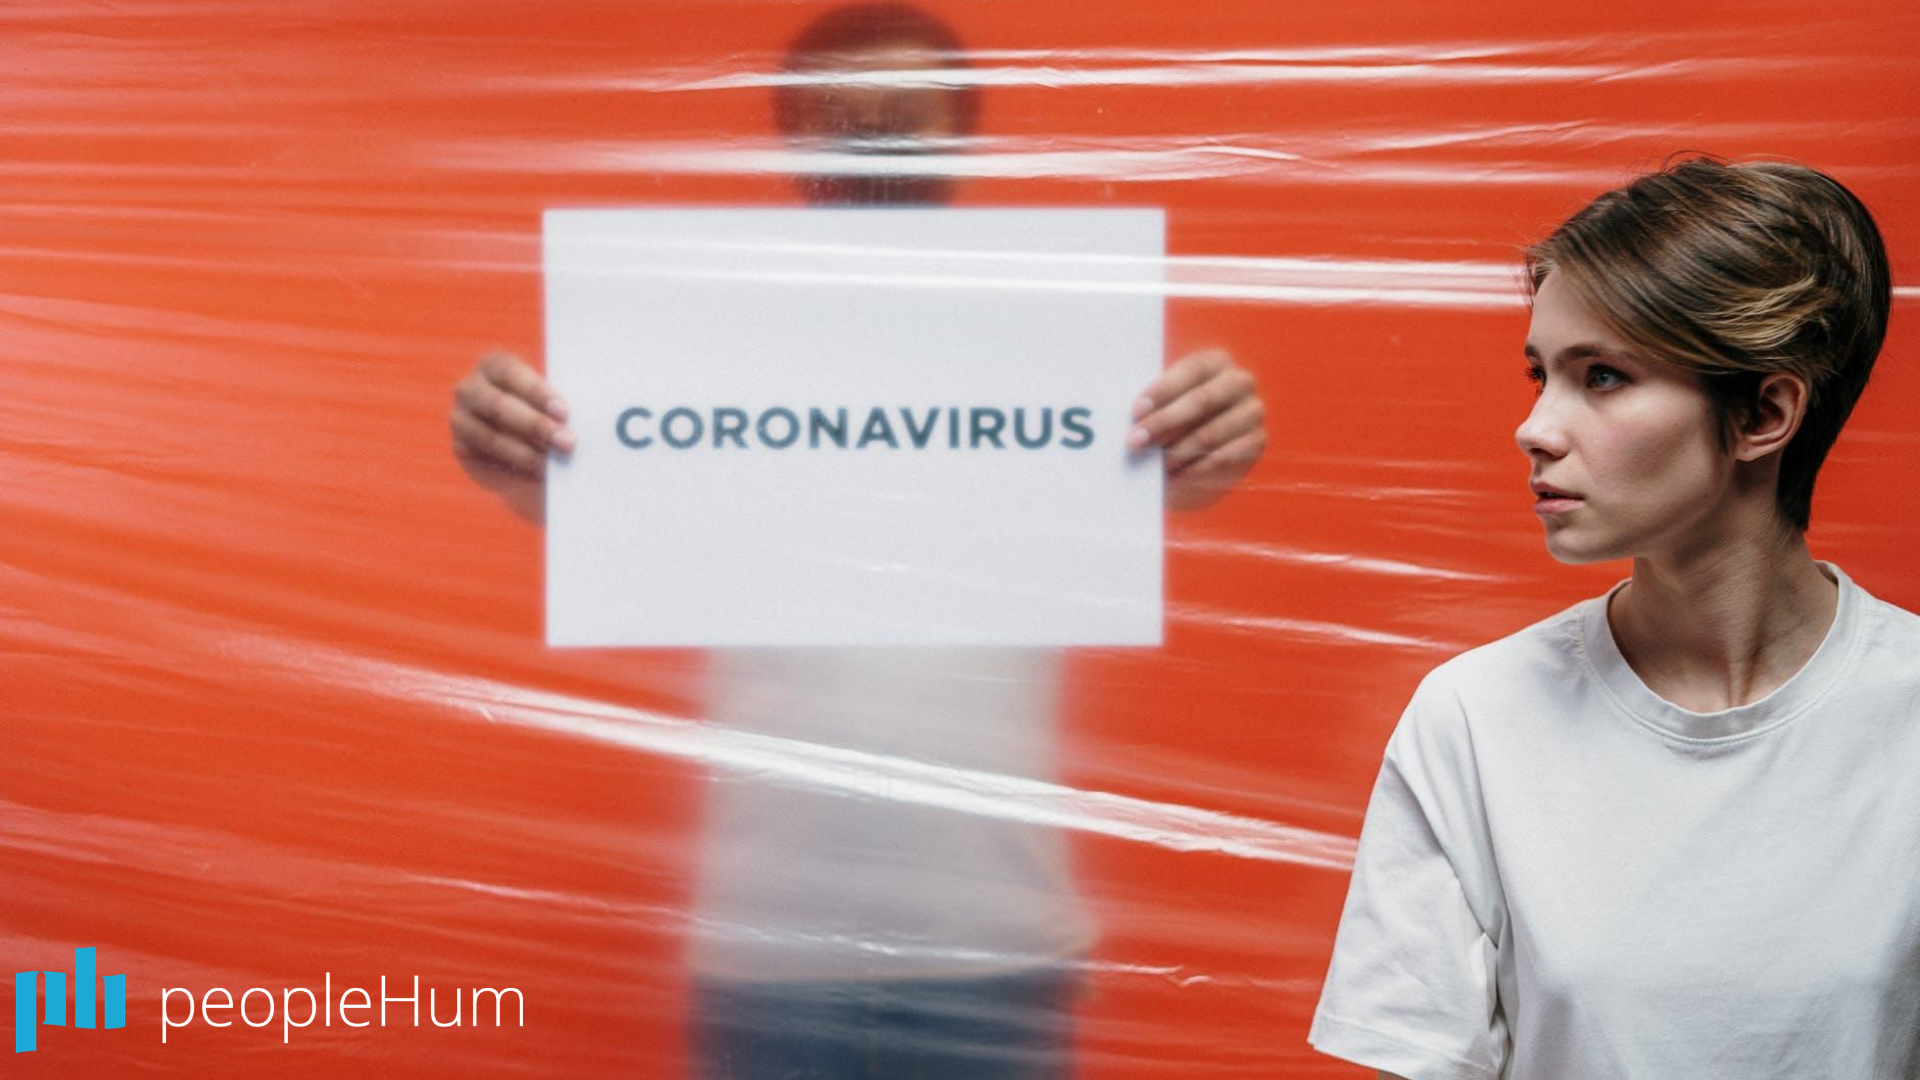 10 things an employer should not be doing during the Coronavirus pandemic